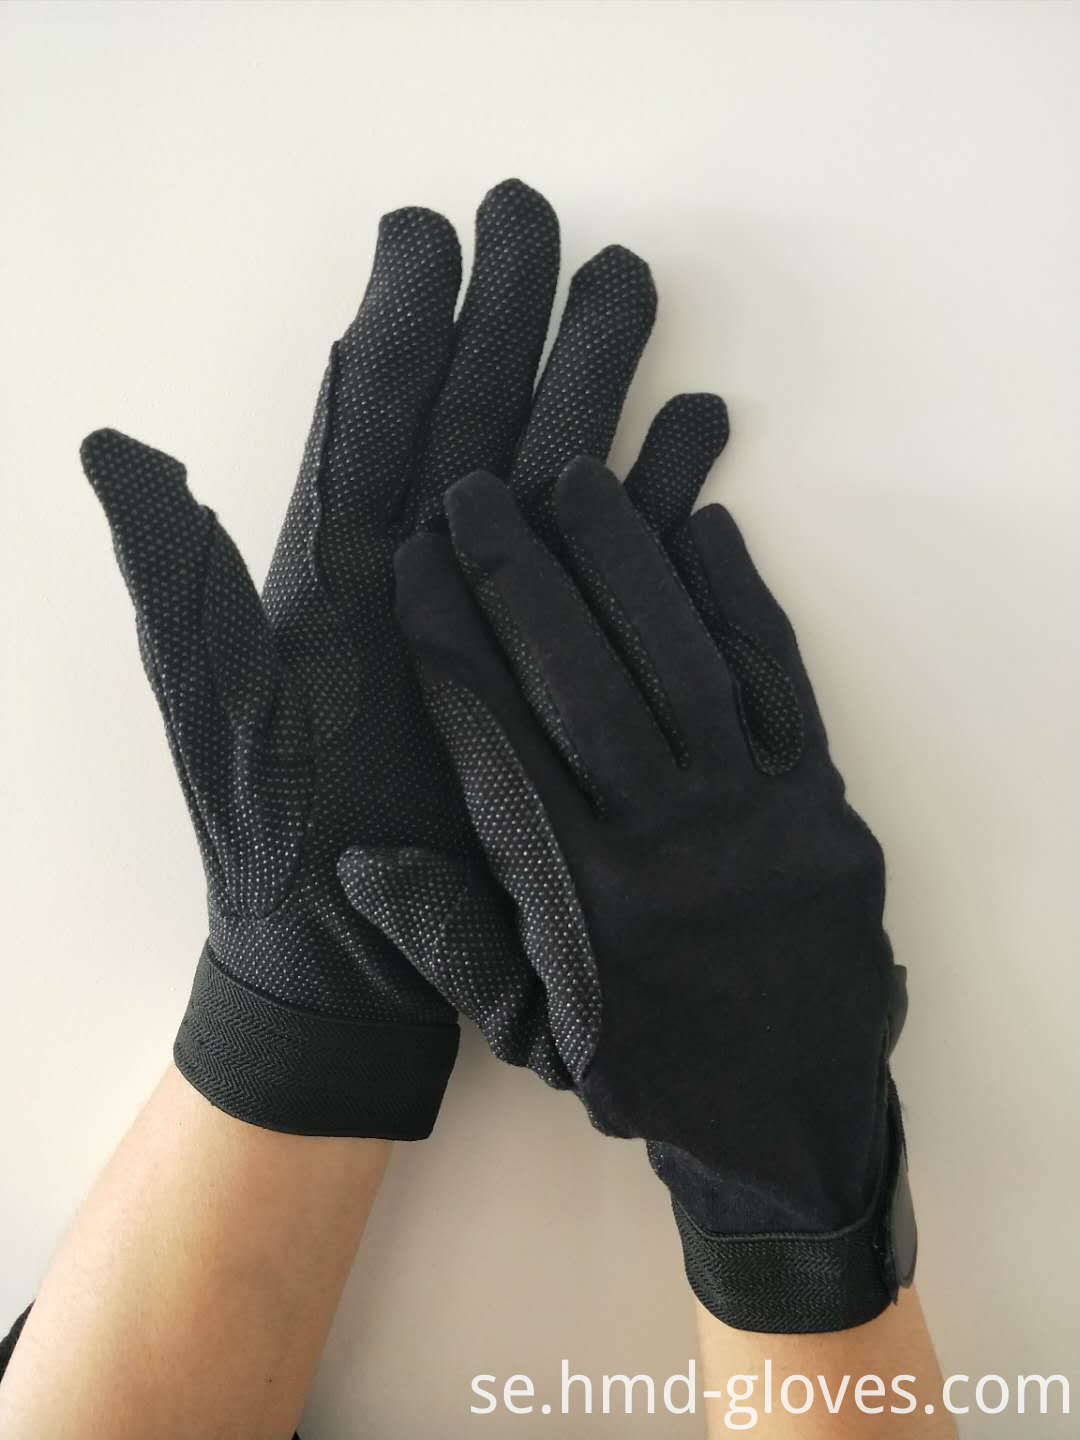 Deluxe Black Sure Grip Gloves